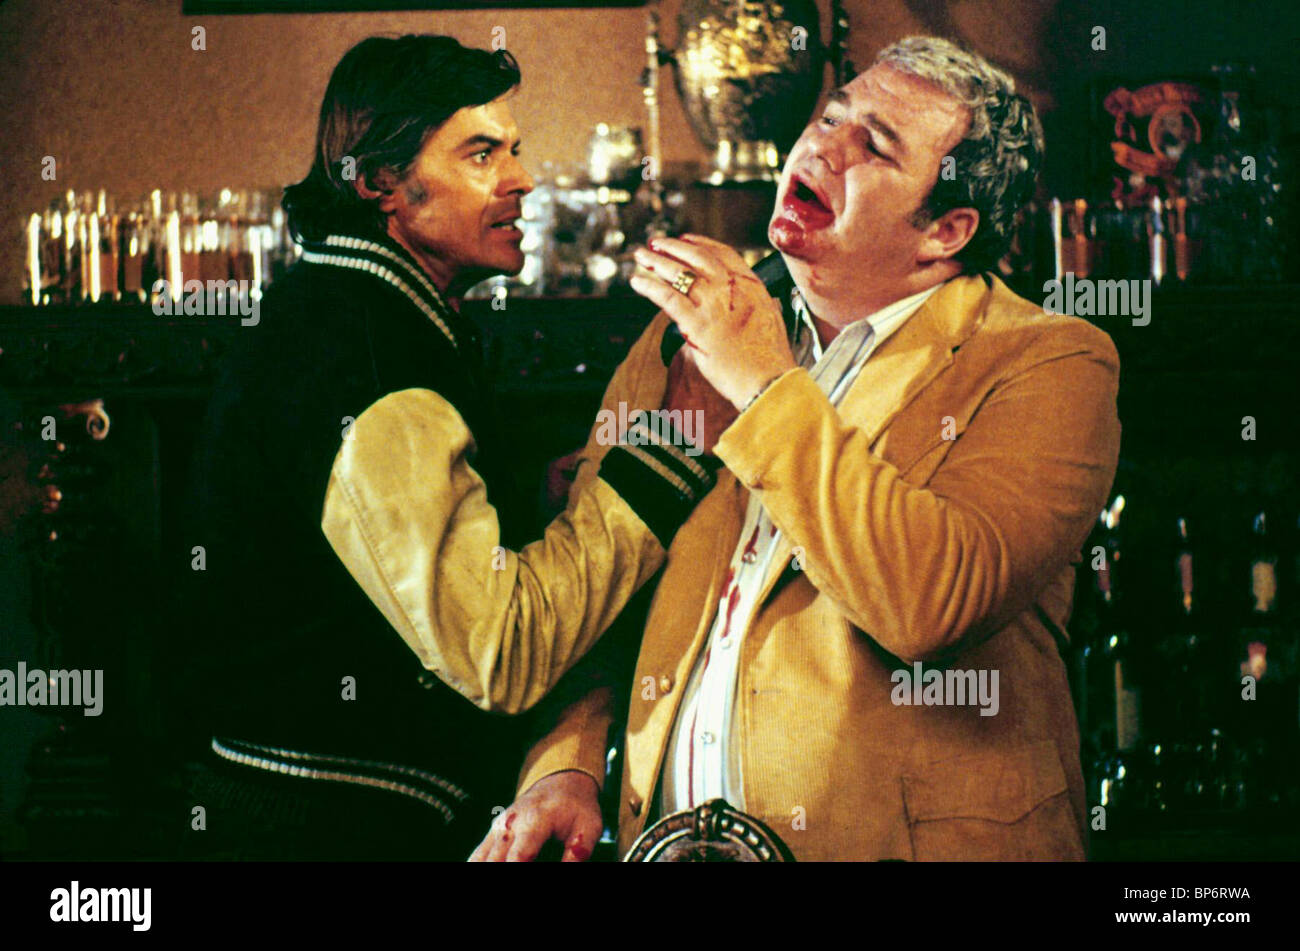 ROBERT URICH & HOYT AXTON ENDANGERED SPECIES (1982) - Stock Image